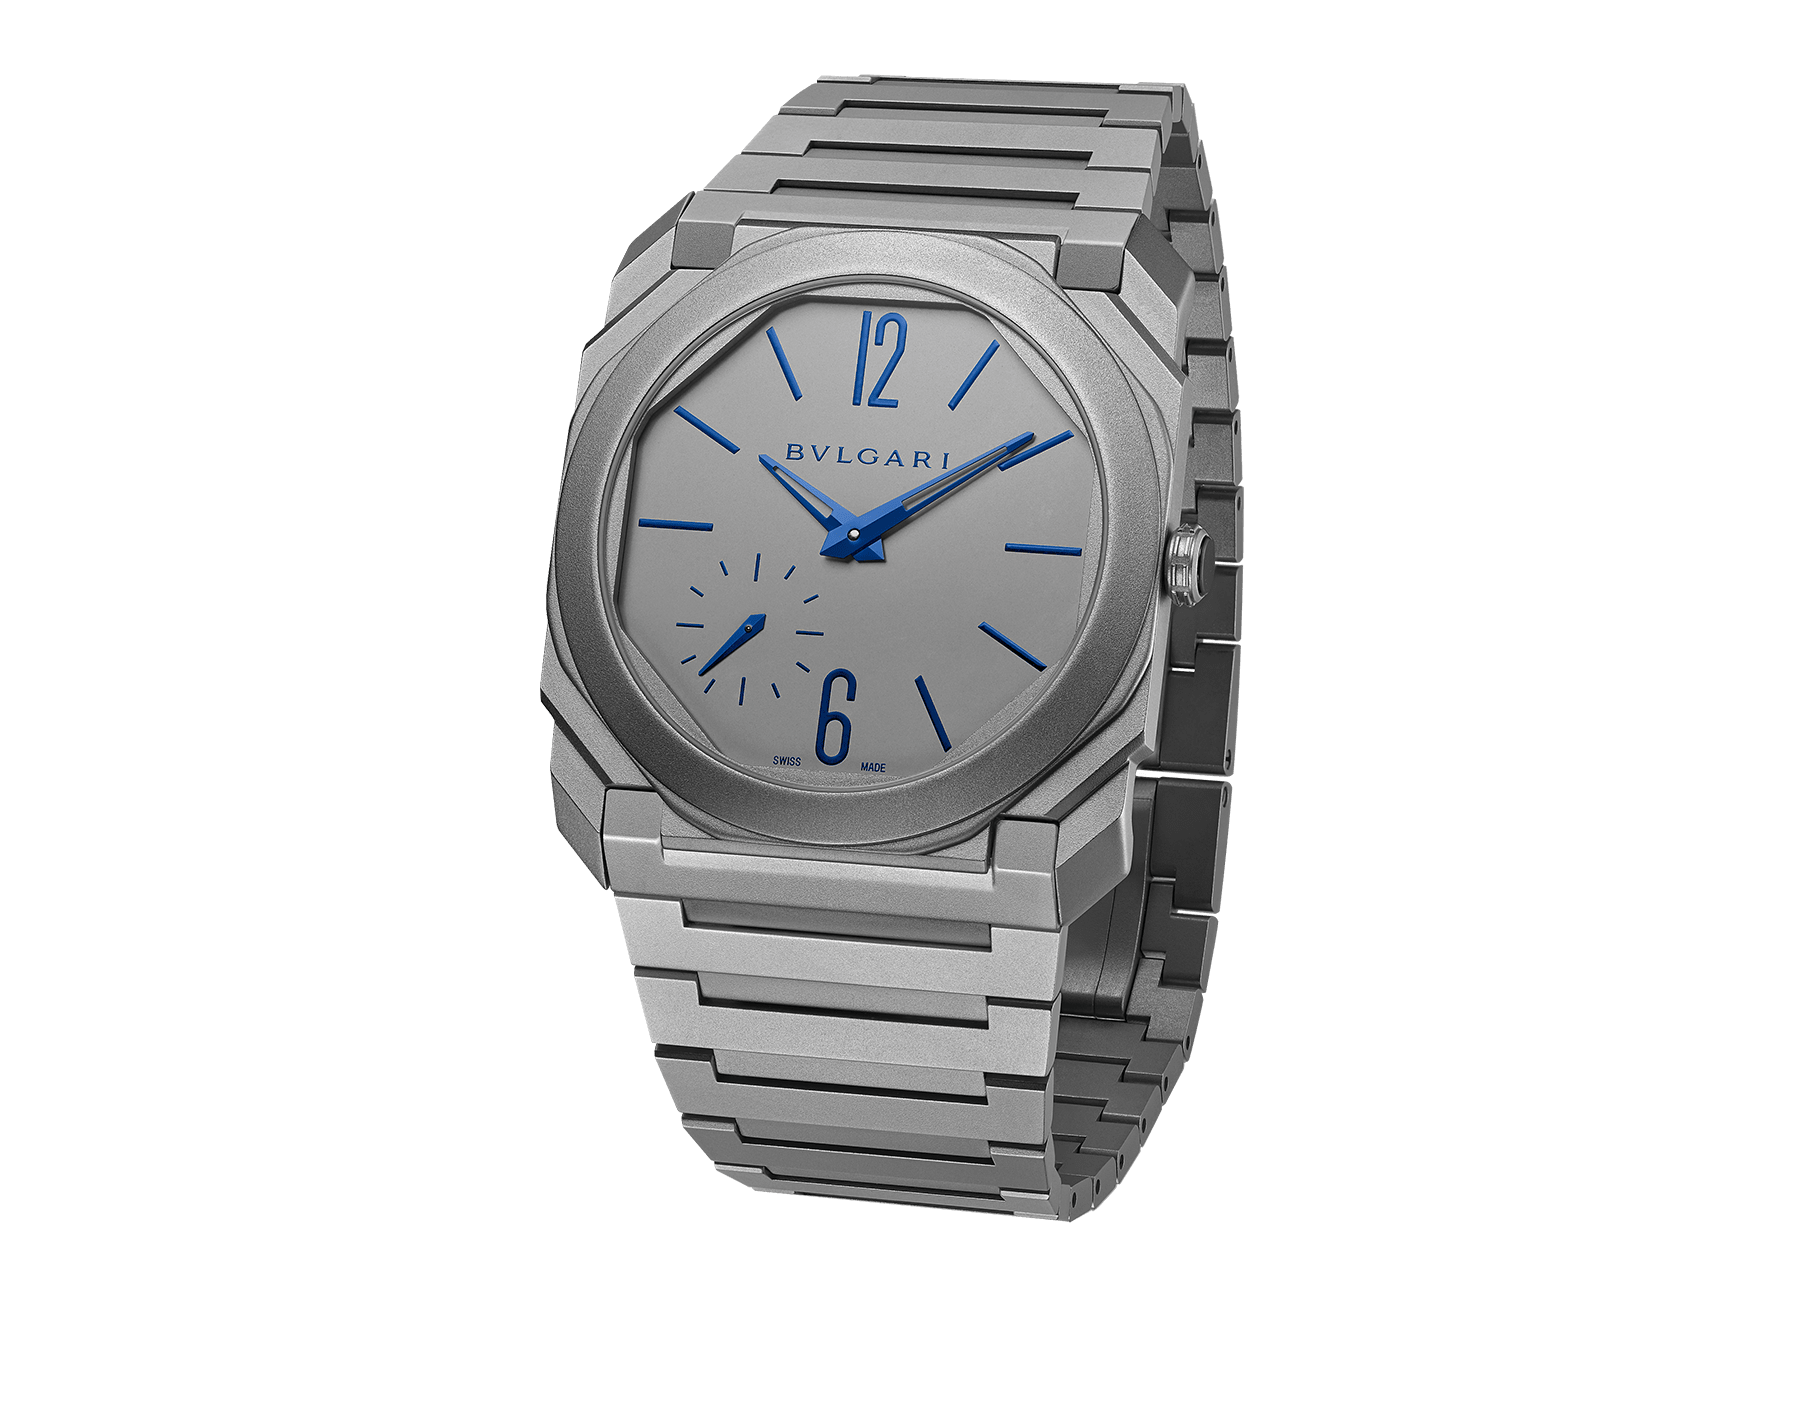 Octo Finissimo Automatic Limited Edition watch with extra-thin mechanical manufacture movement (2.23mm thick), automatic winding, platinum microrotor, small seconds, case, dial and bracelet in titanium and blue indexes and hands 102945 image 1